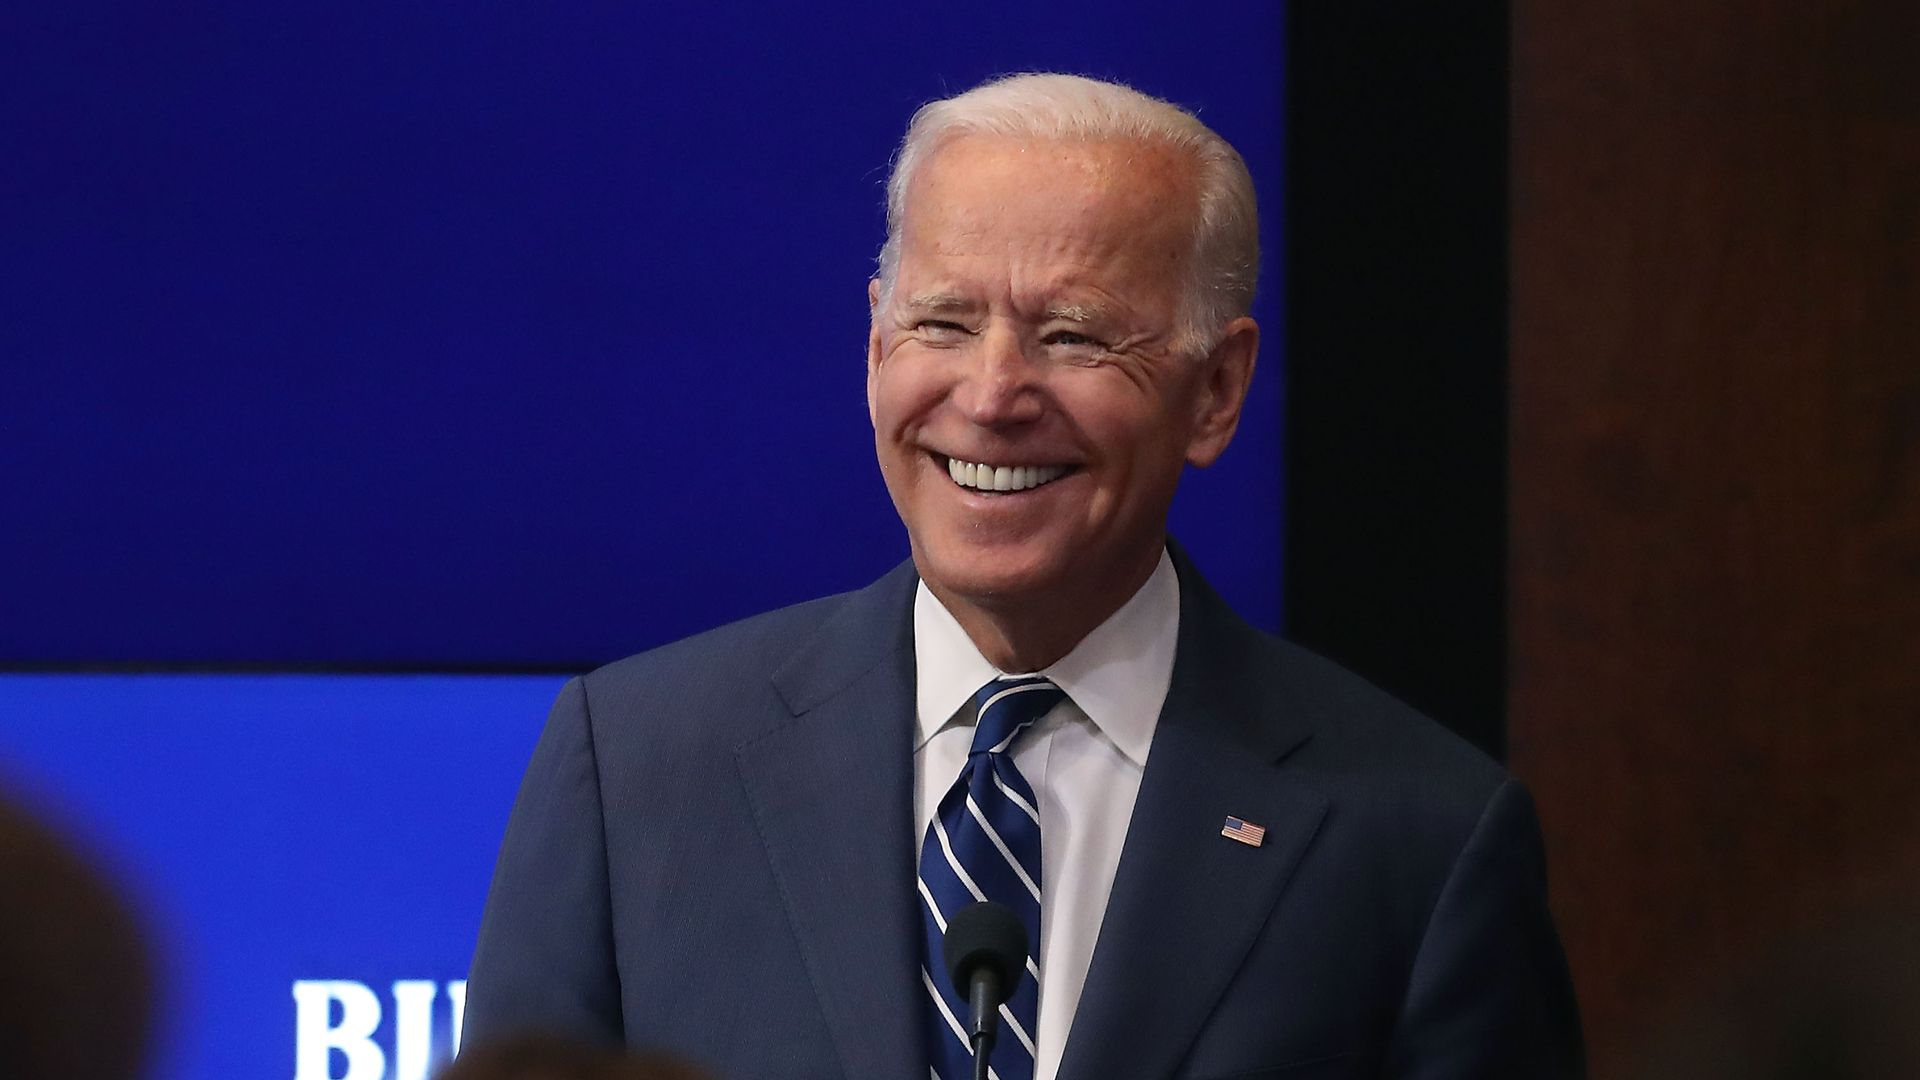 Joe Biden smiling.